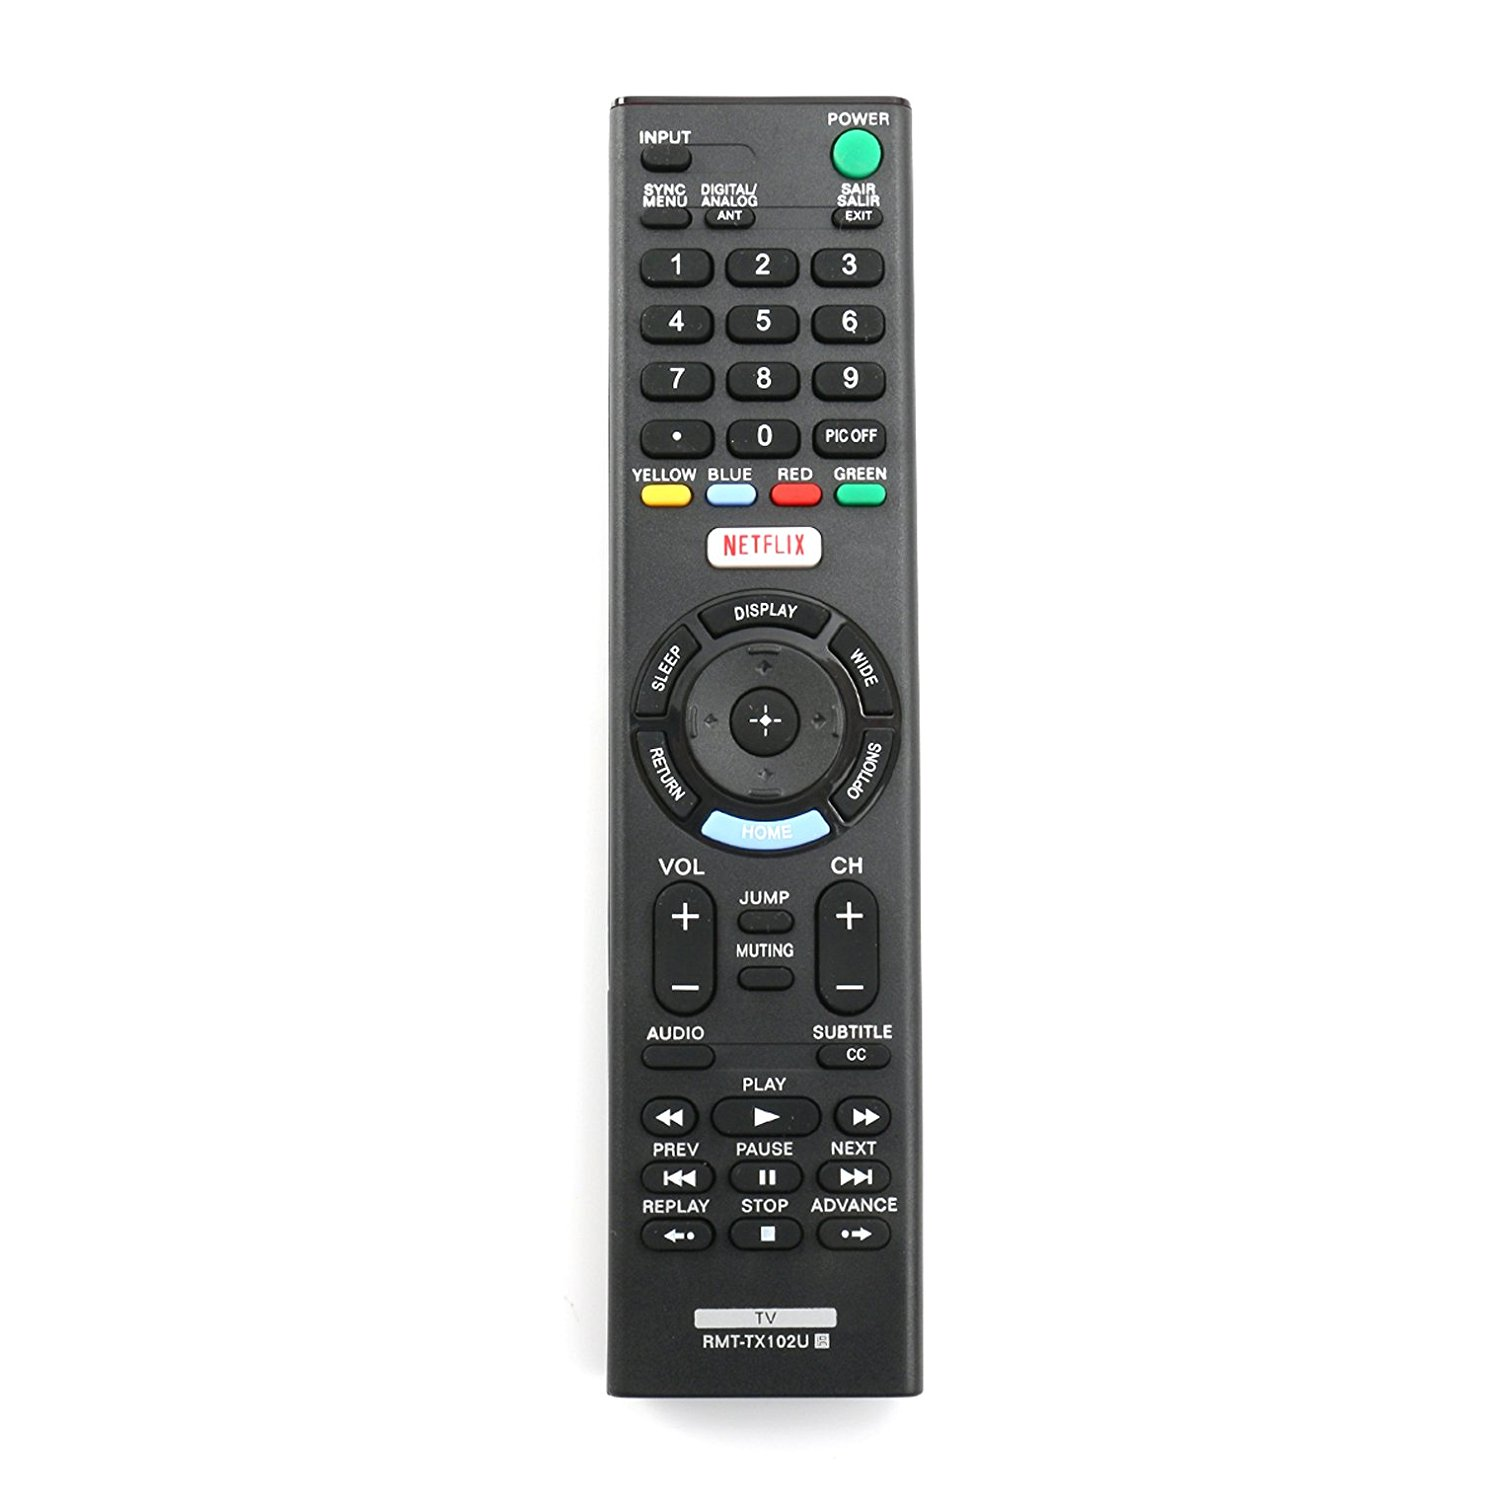 New RMT-TX102U Replace Remote Control fit for Sony TV KDL-32R500C KDL-40R510C KDL-40R530C KDL-40R550C KDL-40W600D KDL-48R510C KDL-48R530C KDL-48R550C KDL-55W6500